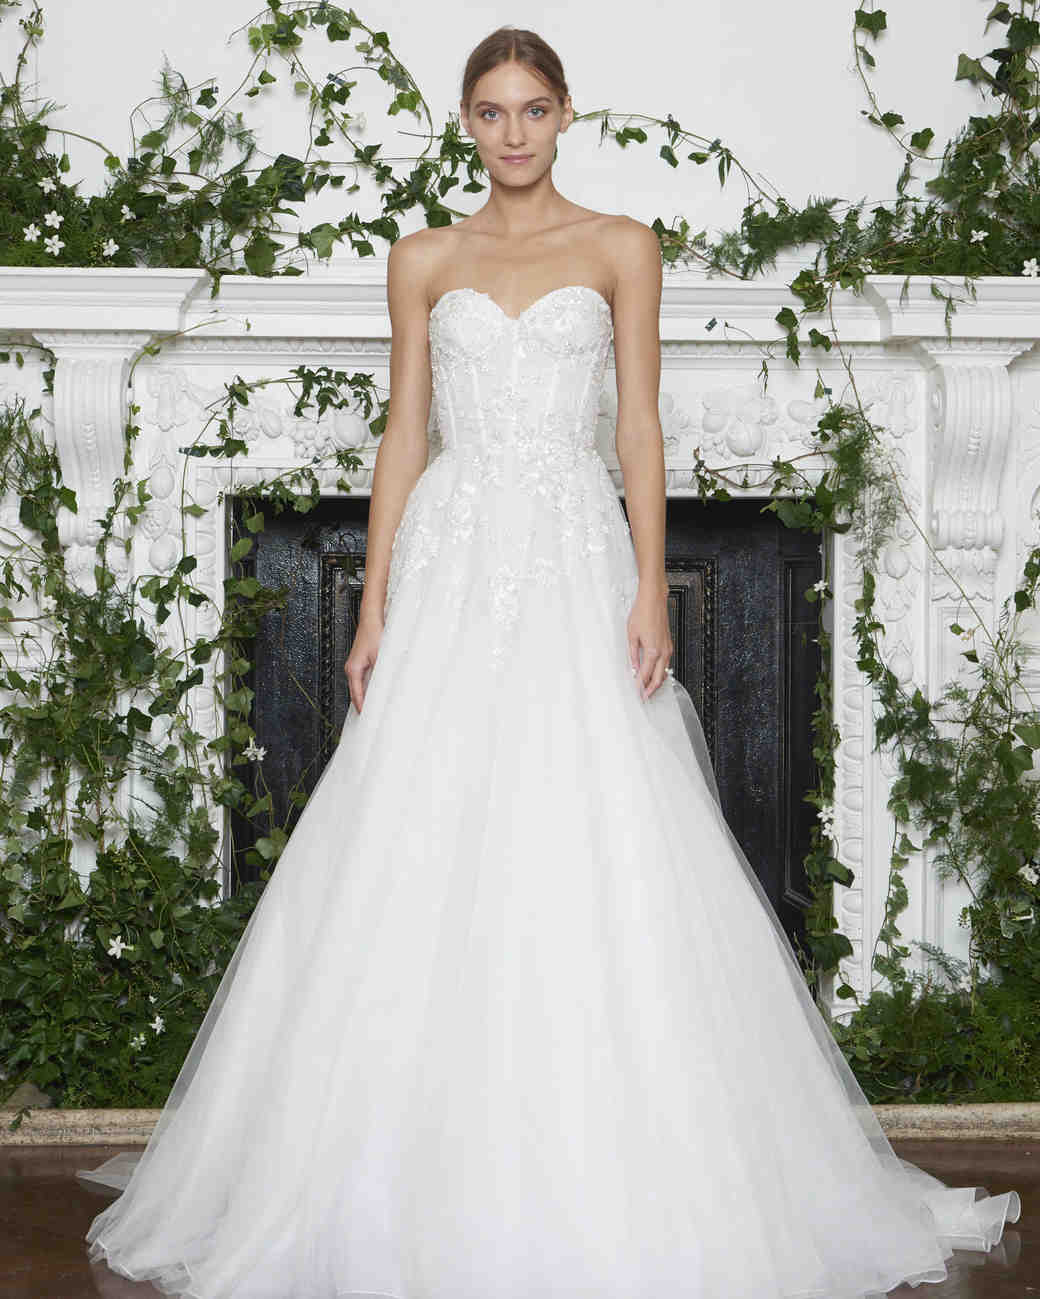 Monique Lhuillier Fall 2018 Strapless Lace Ball Gown with Exposed Boning